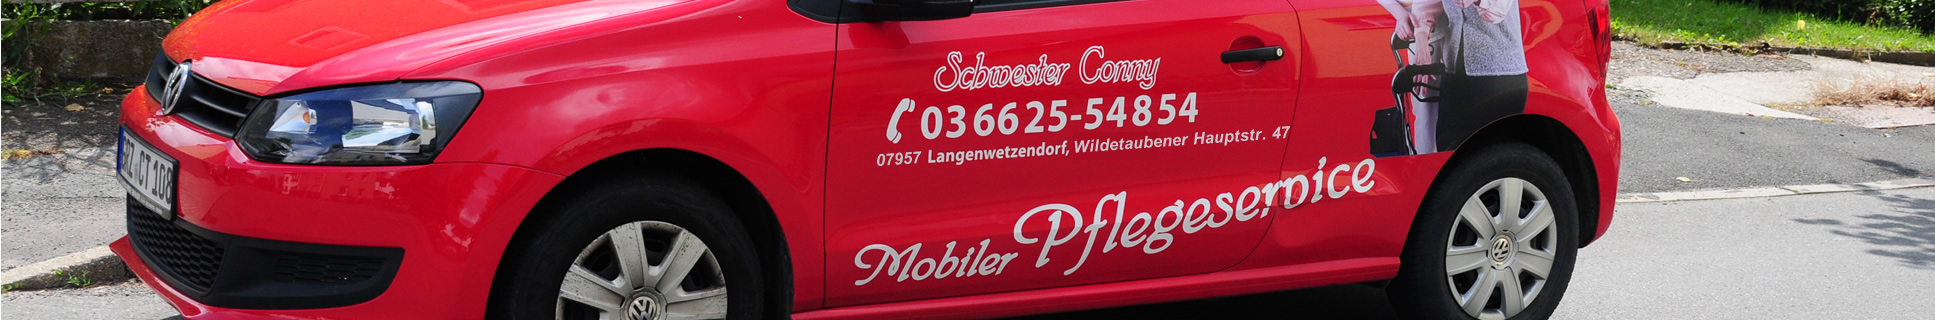 Connys mobiler Pflegeservice in Widetaube